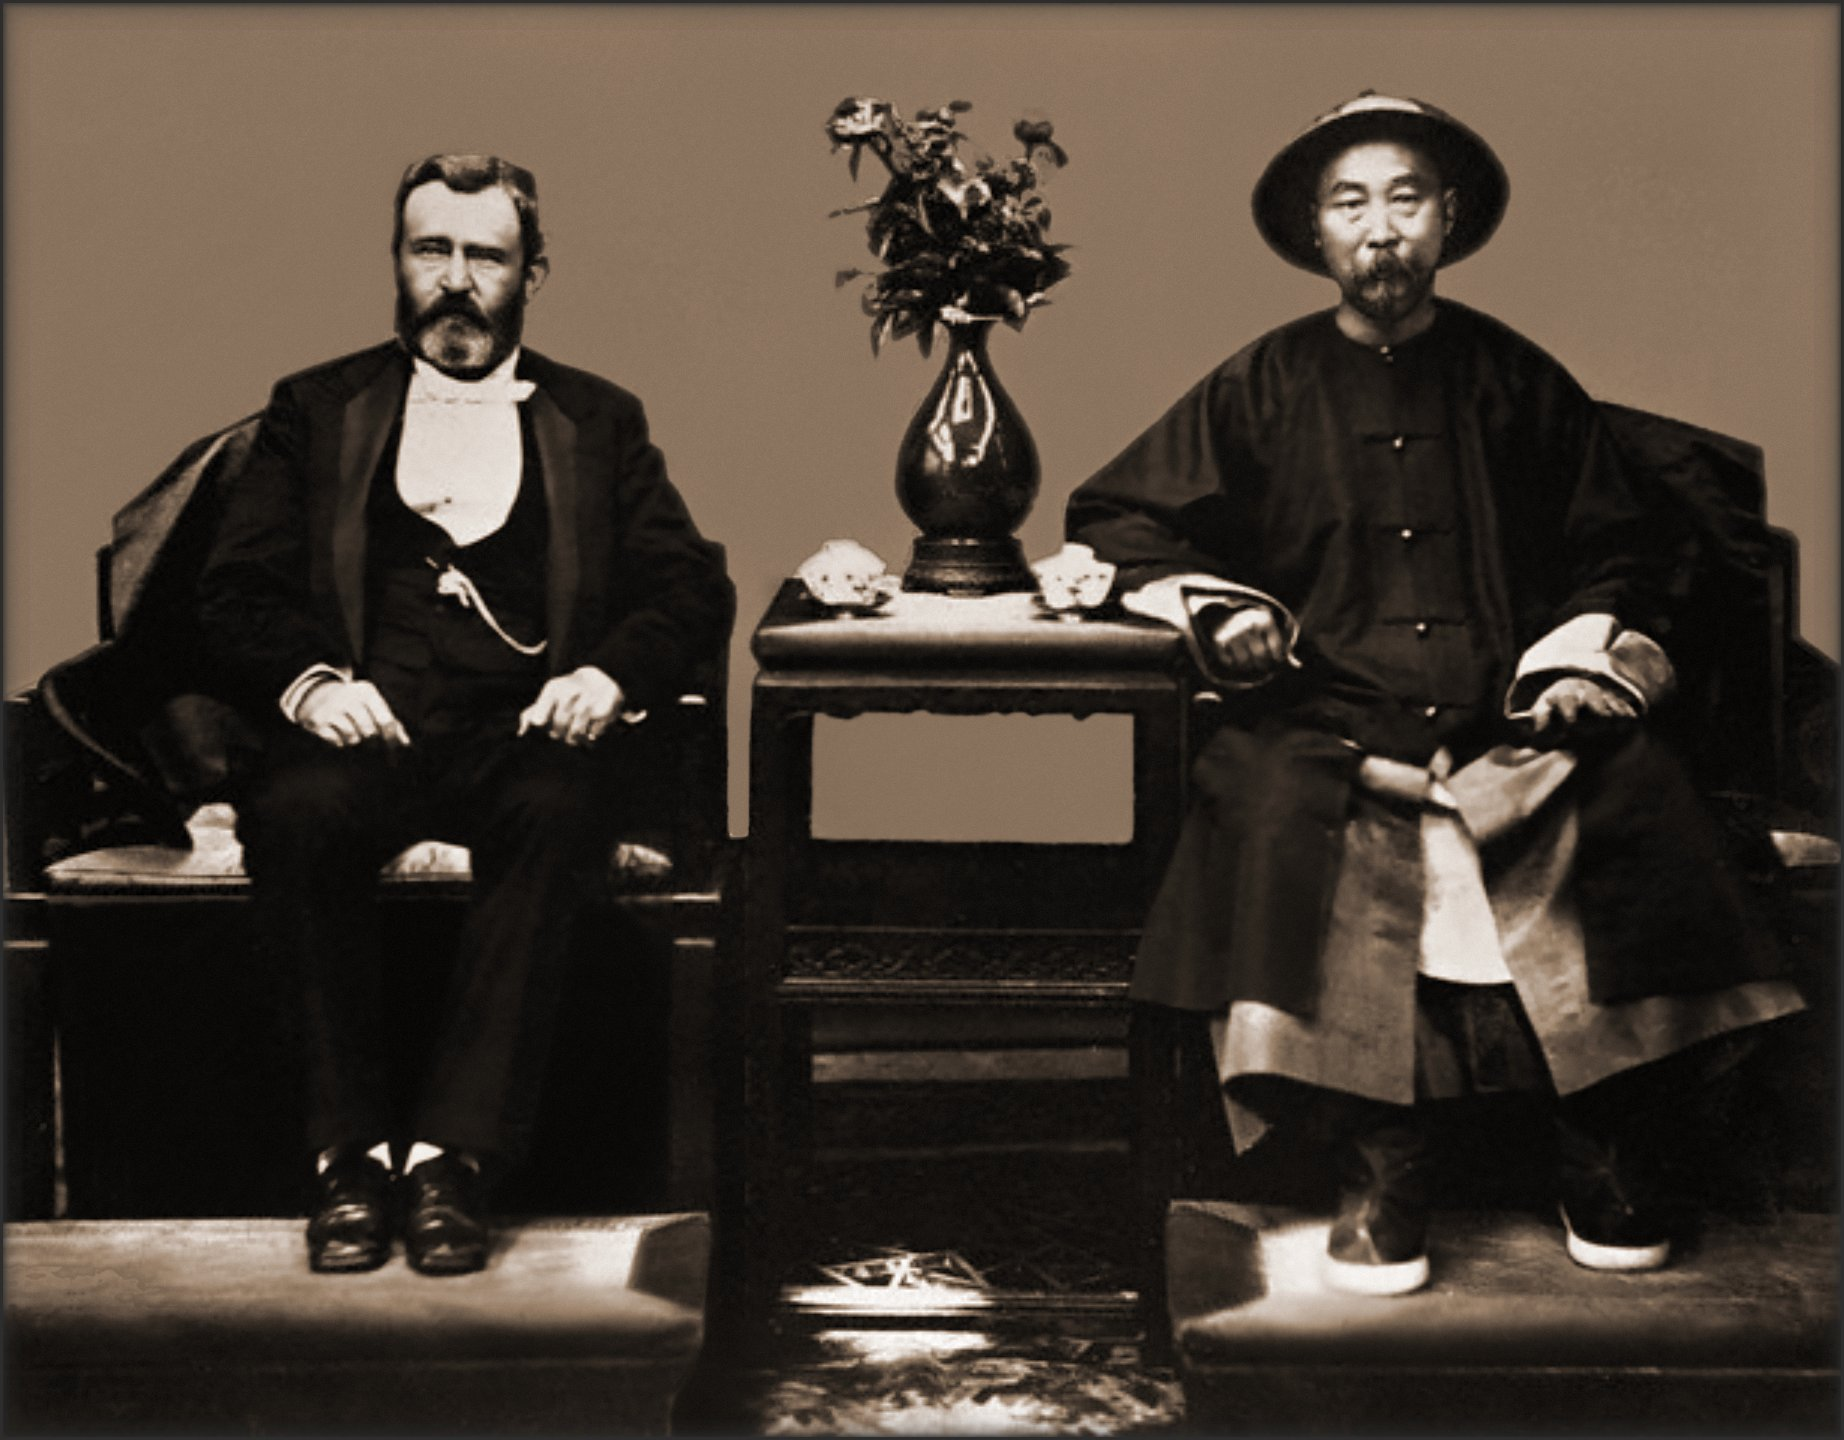 Ulysses S. Grant & Li Hung Chang, Tientsin, China [1879] Attribution Unk [RESTORED]